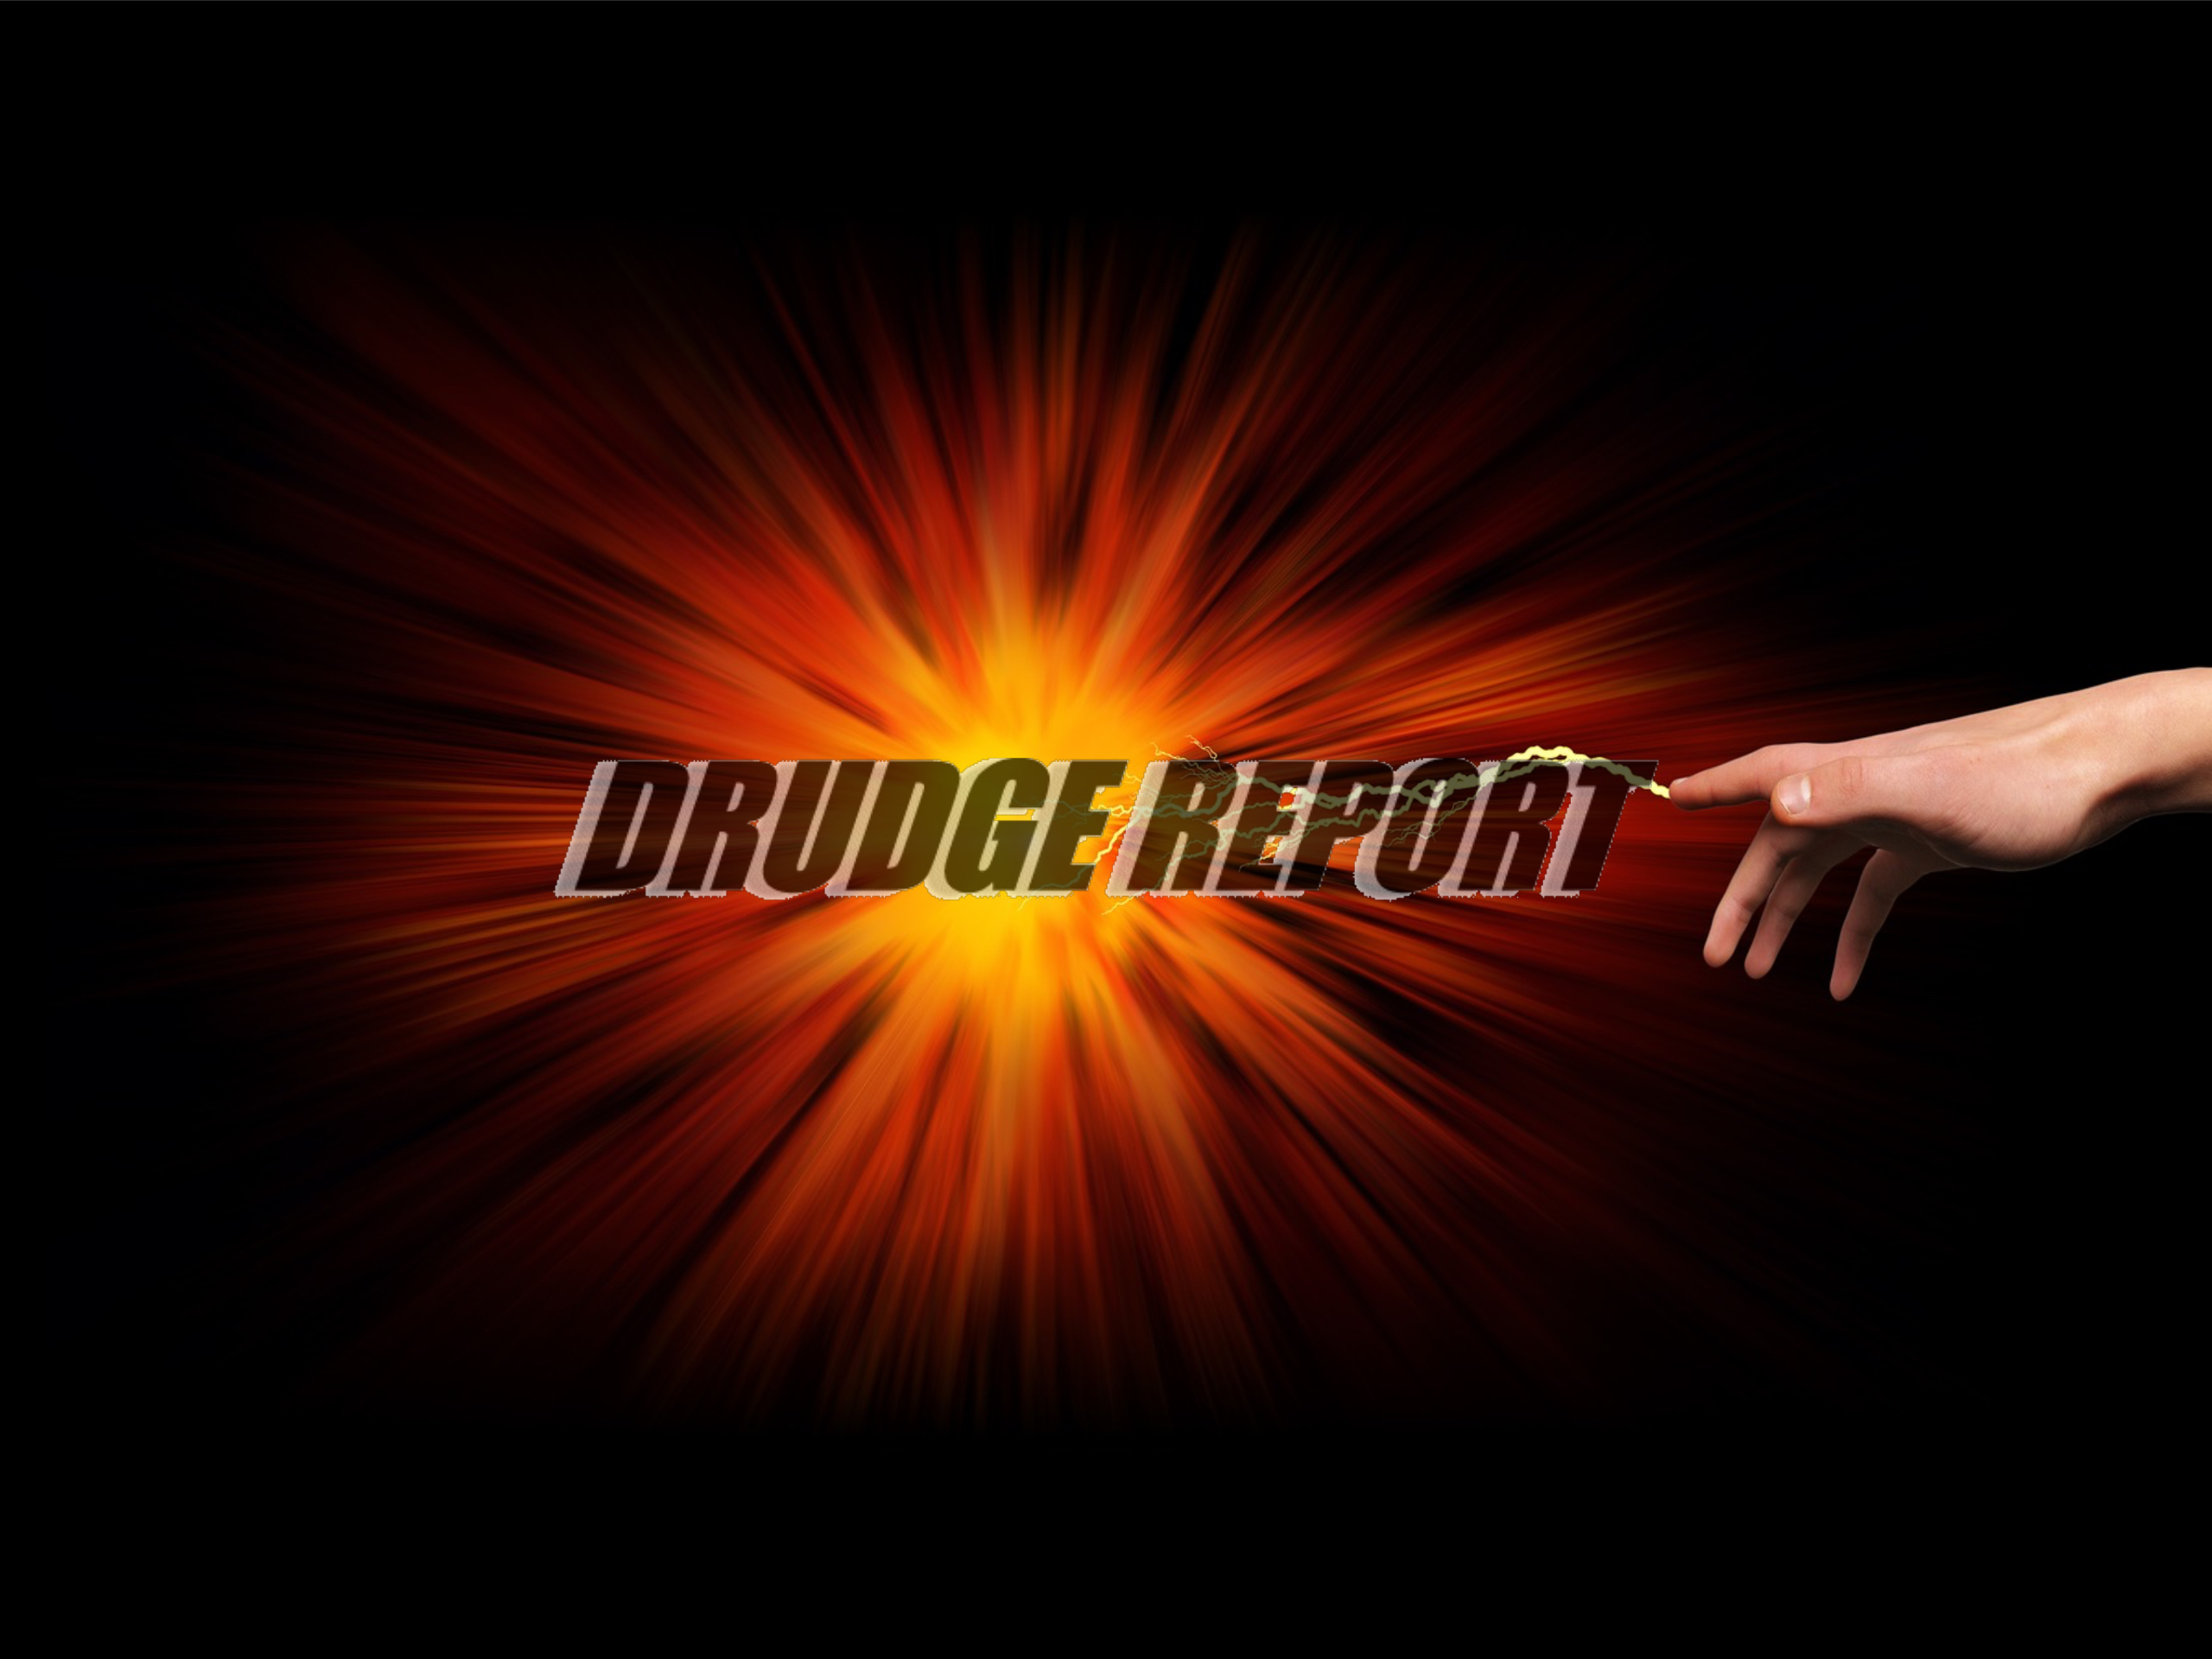 How The Drudge Report Could Destroy Fake News Media